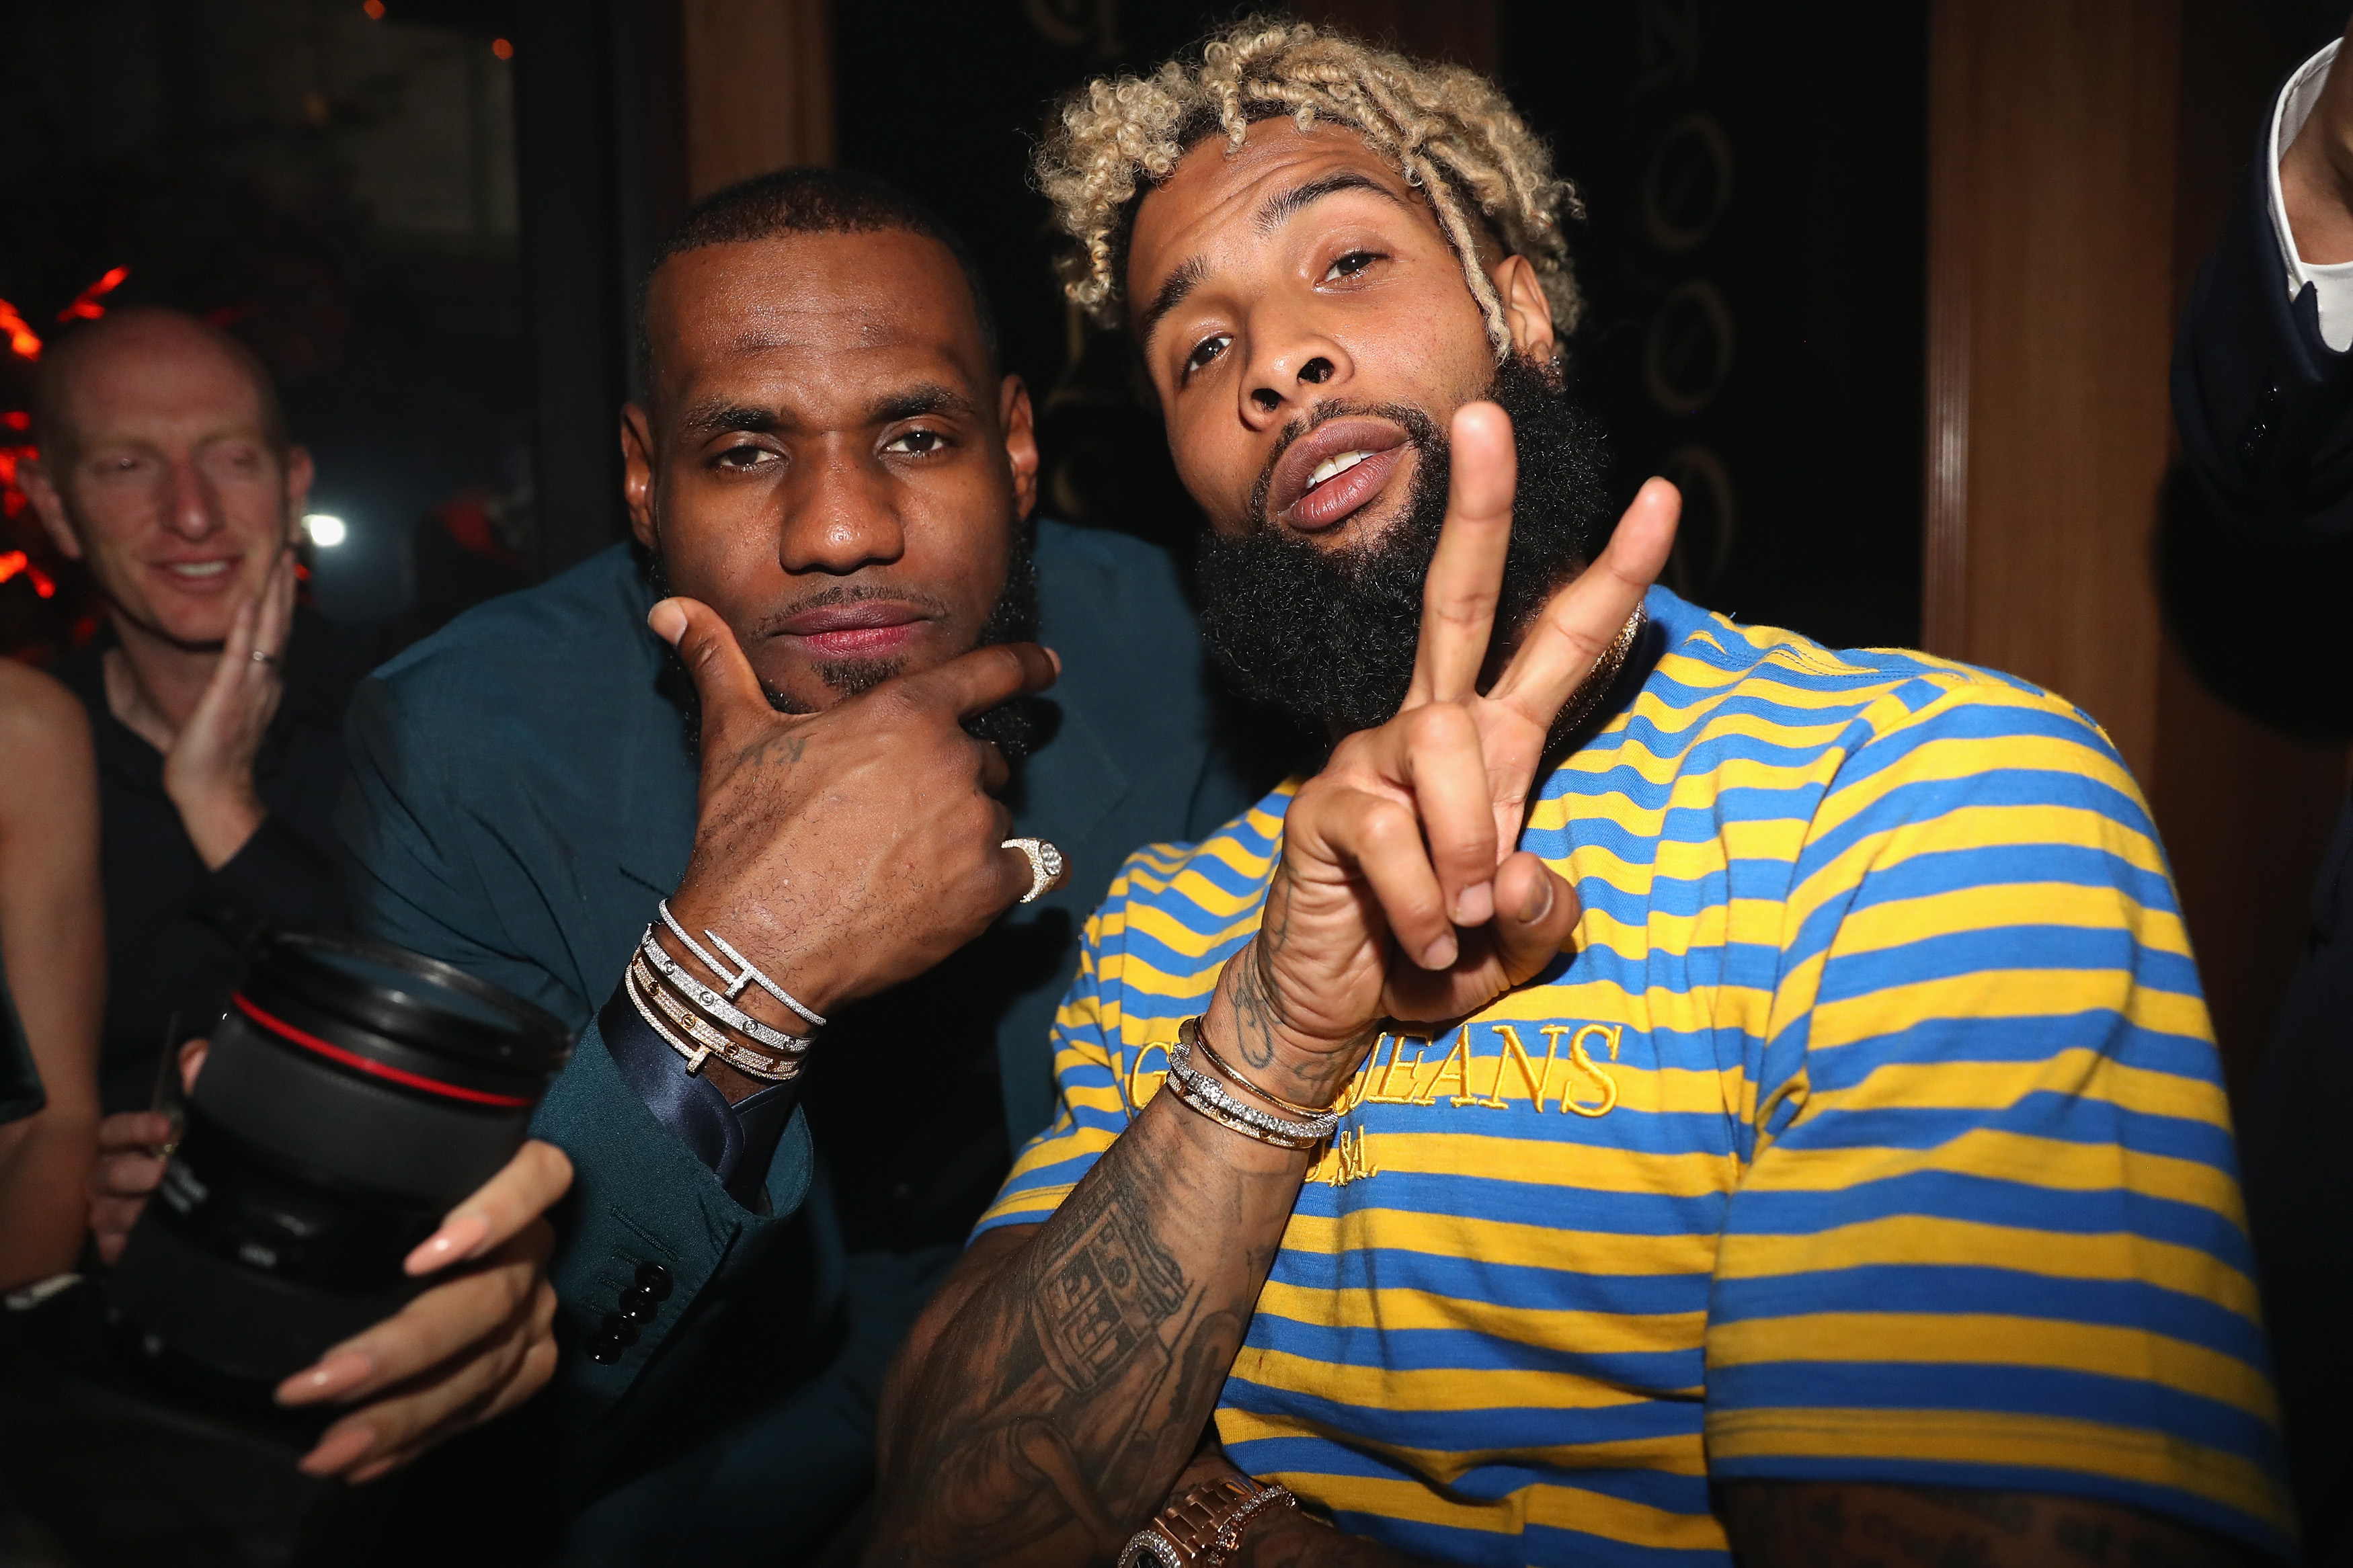 NBA player LeBron James and NFL player Odell Beckham Jr. in 2018